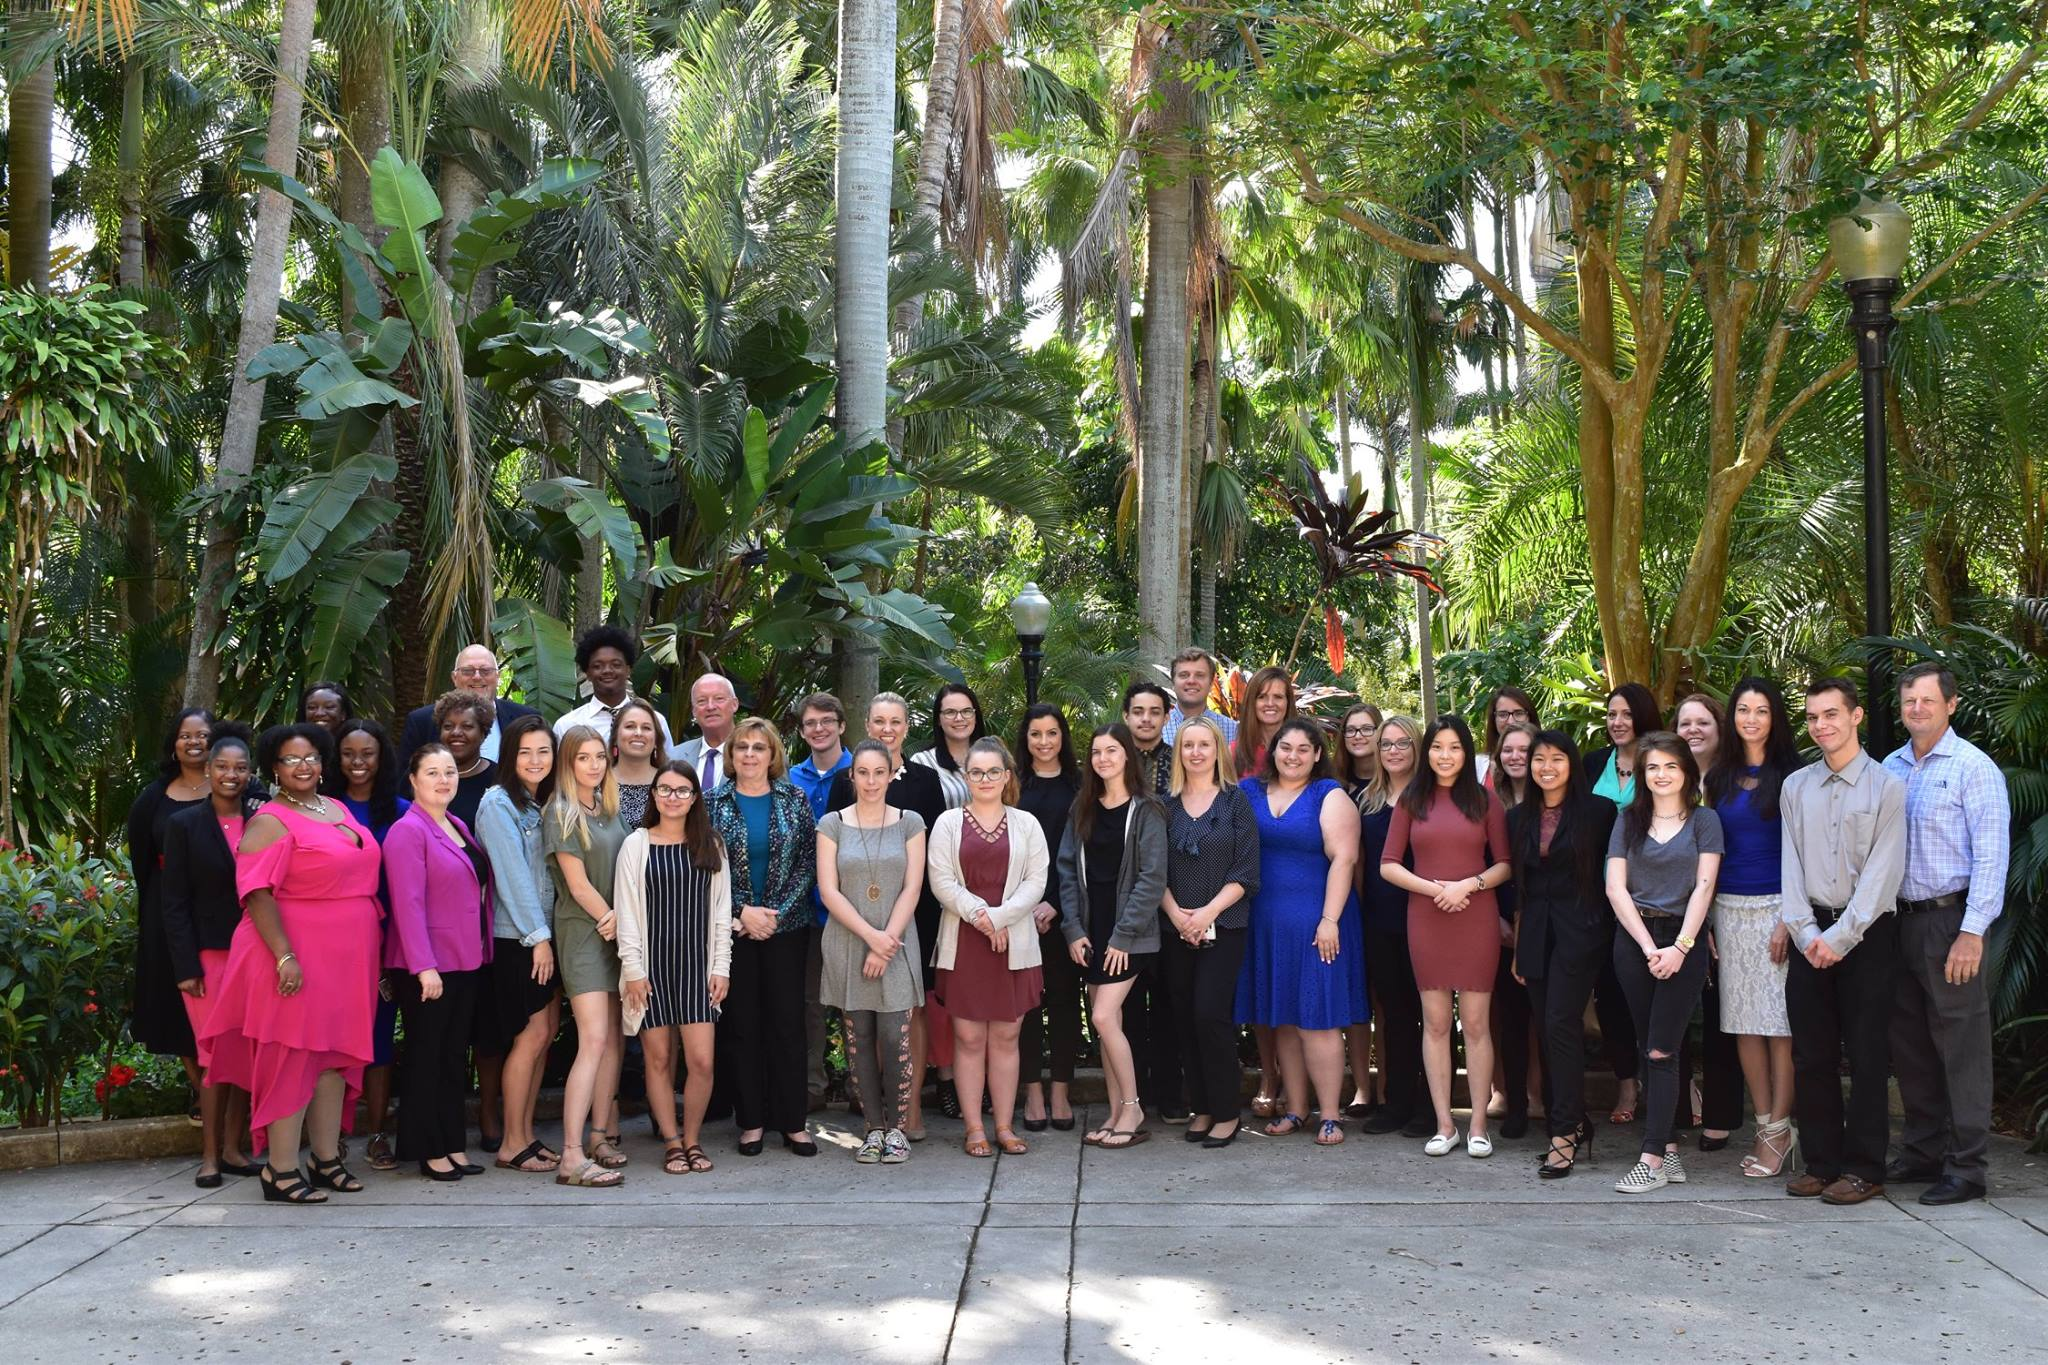 We Celebrated the Graduating Class of 2018 with our School-to-Work Program